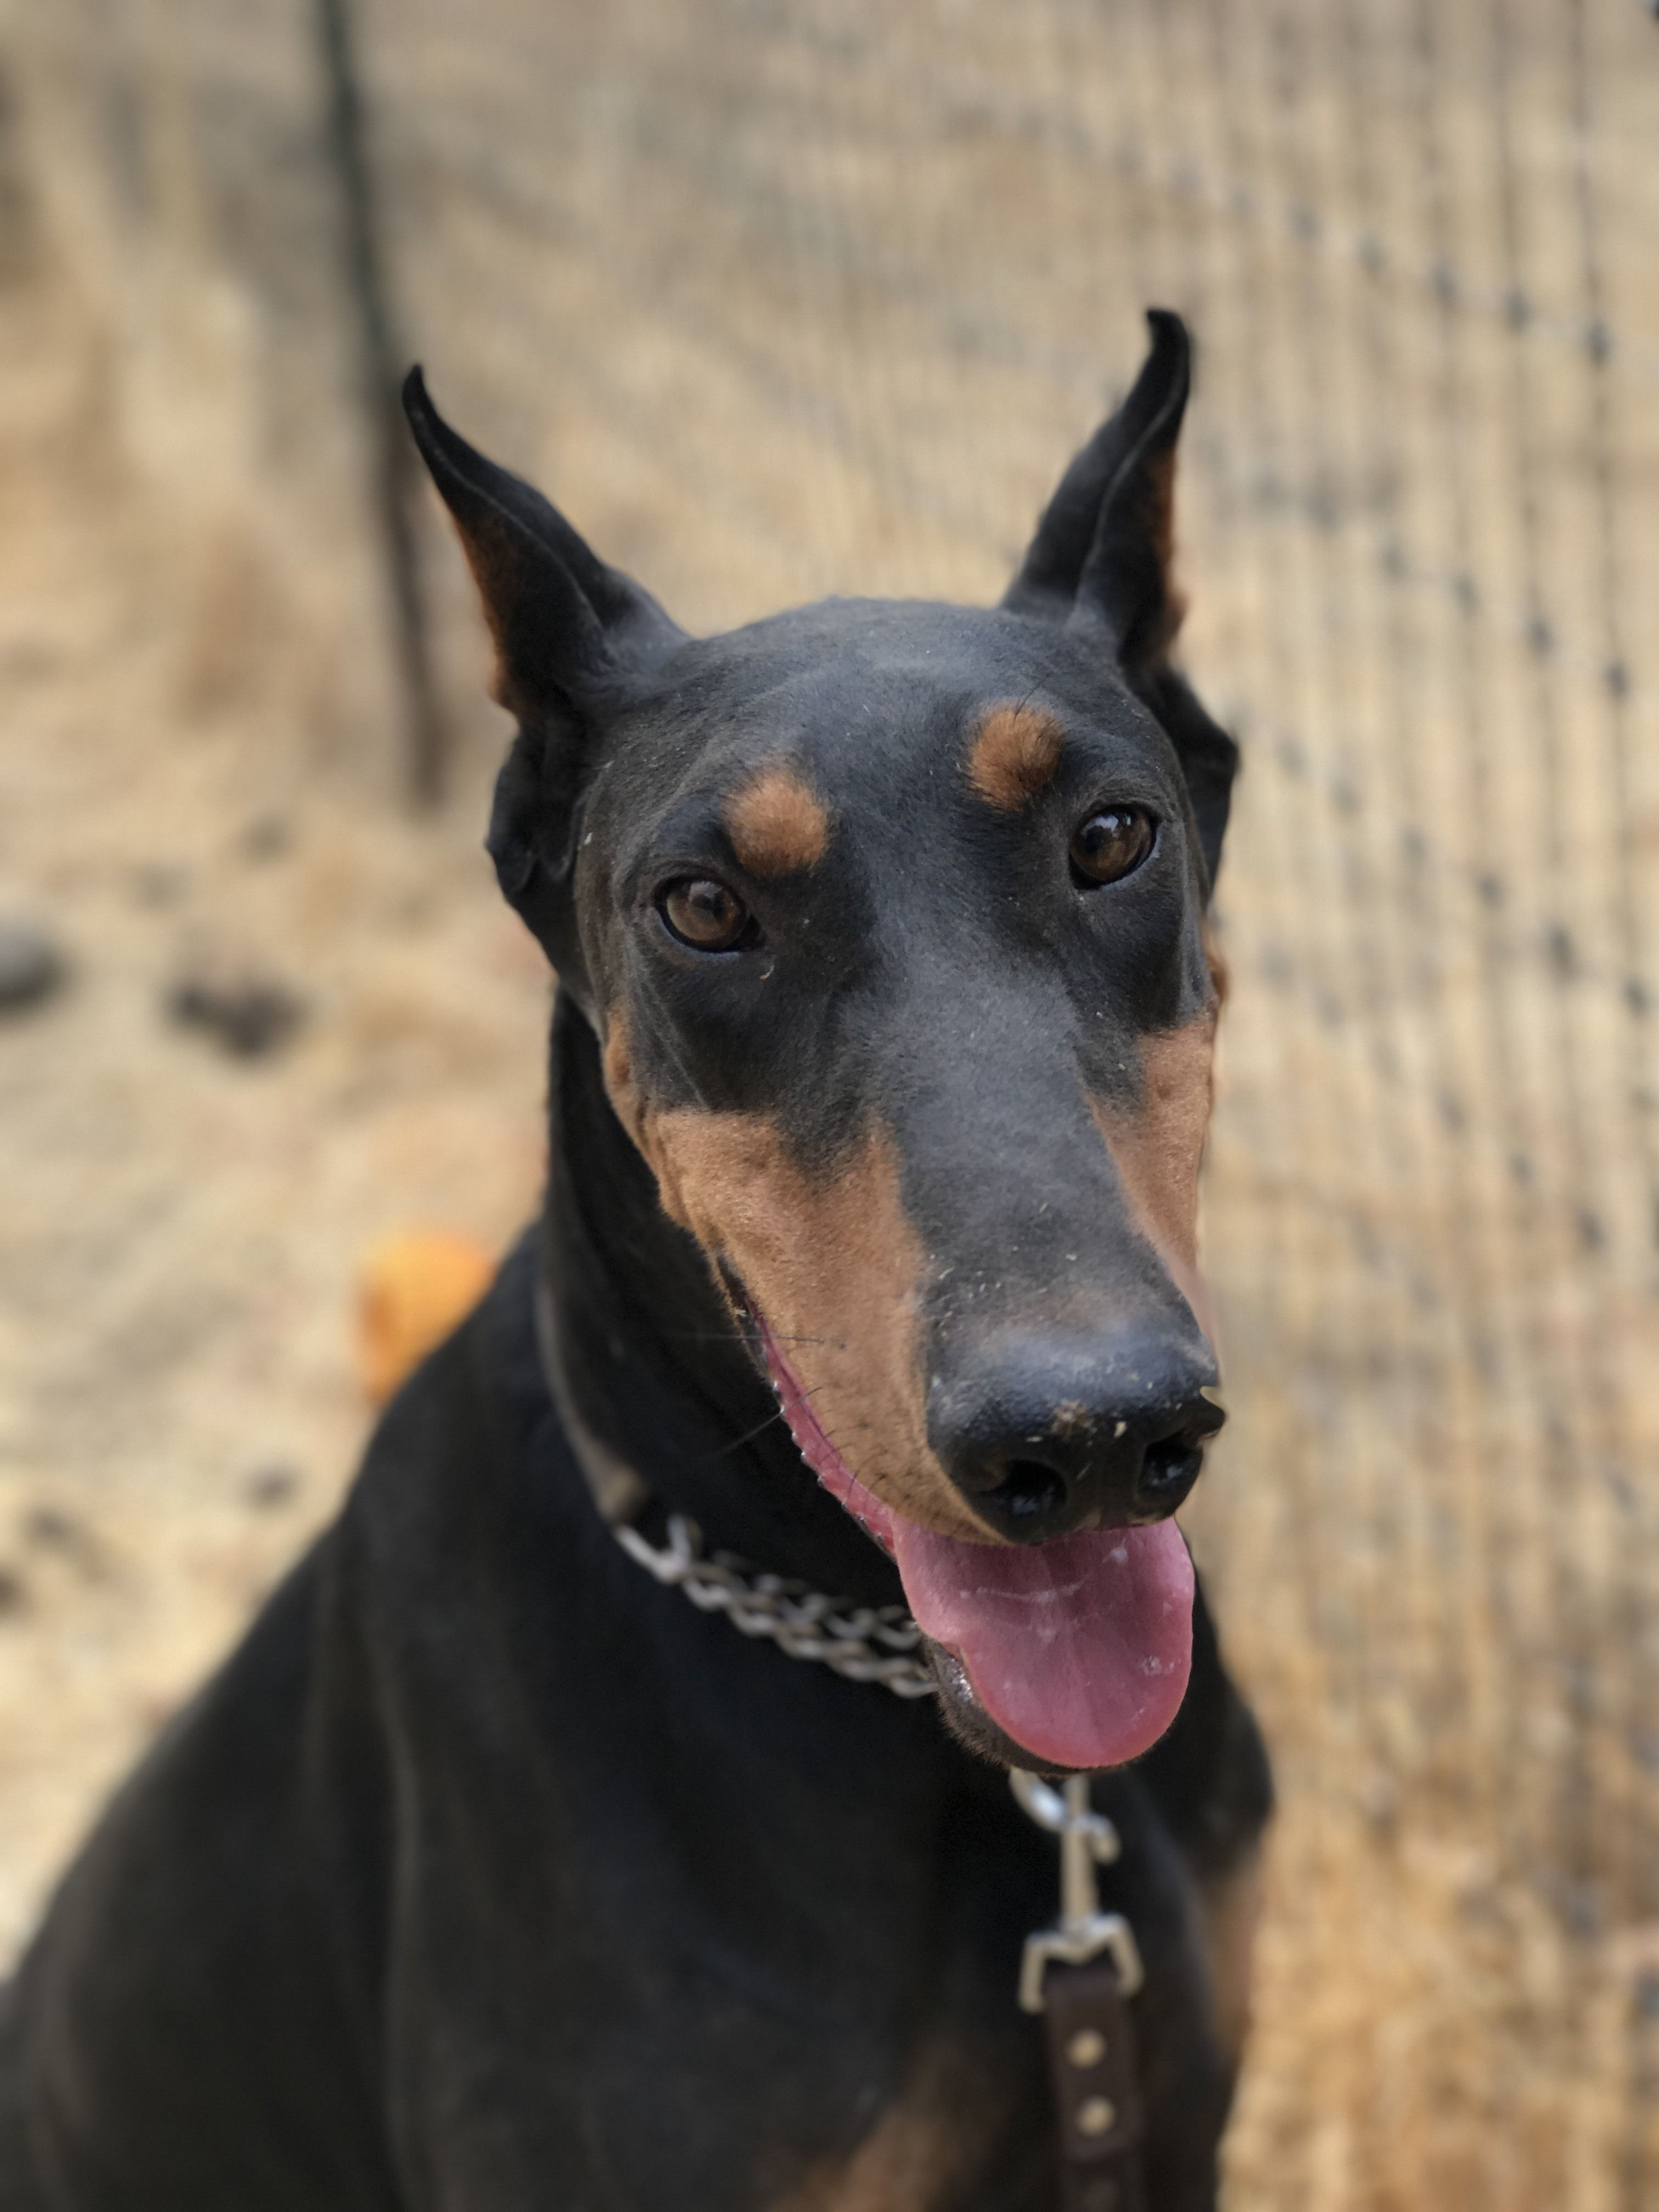 Rummy Is An Adoptable Doberman Pinscher Searching For A Forever